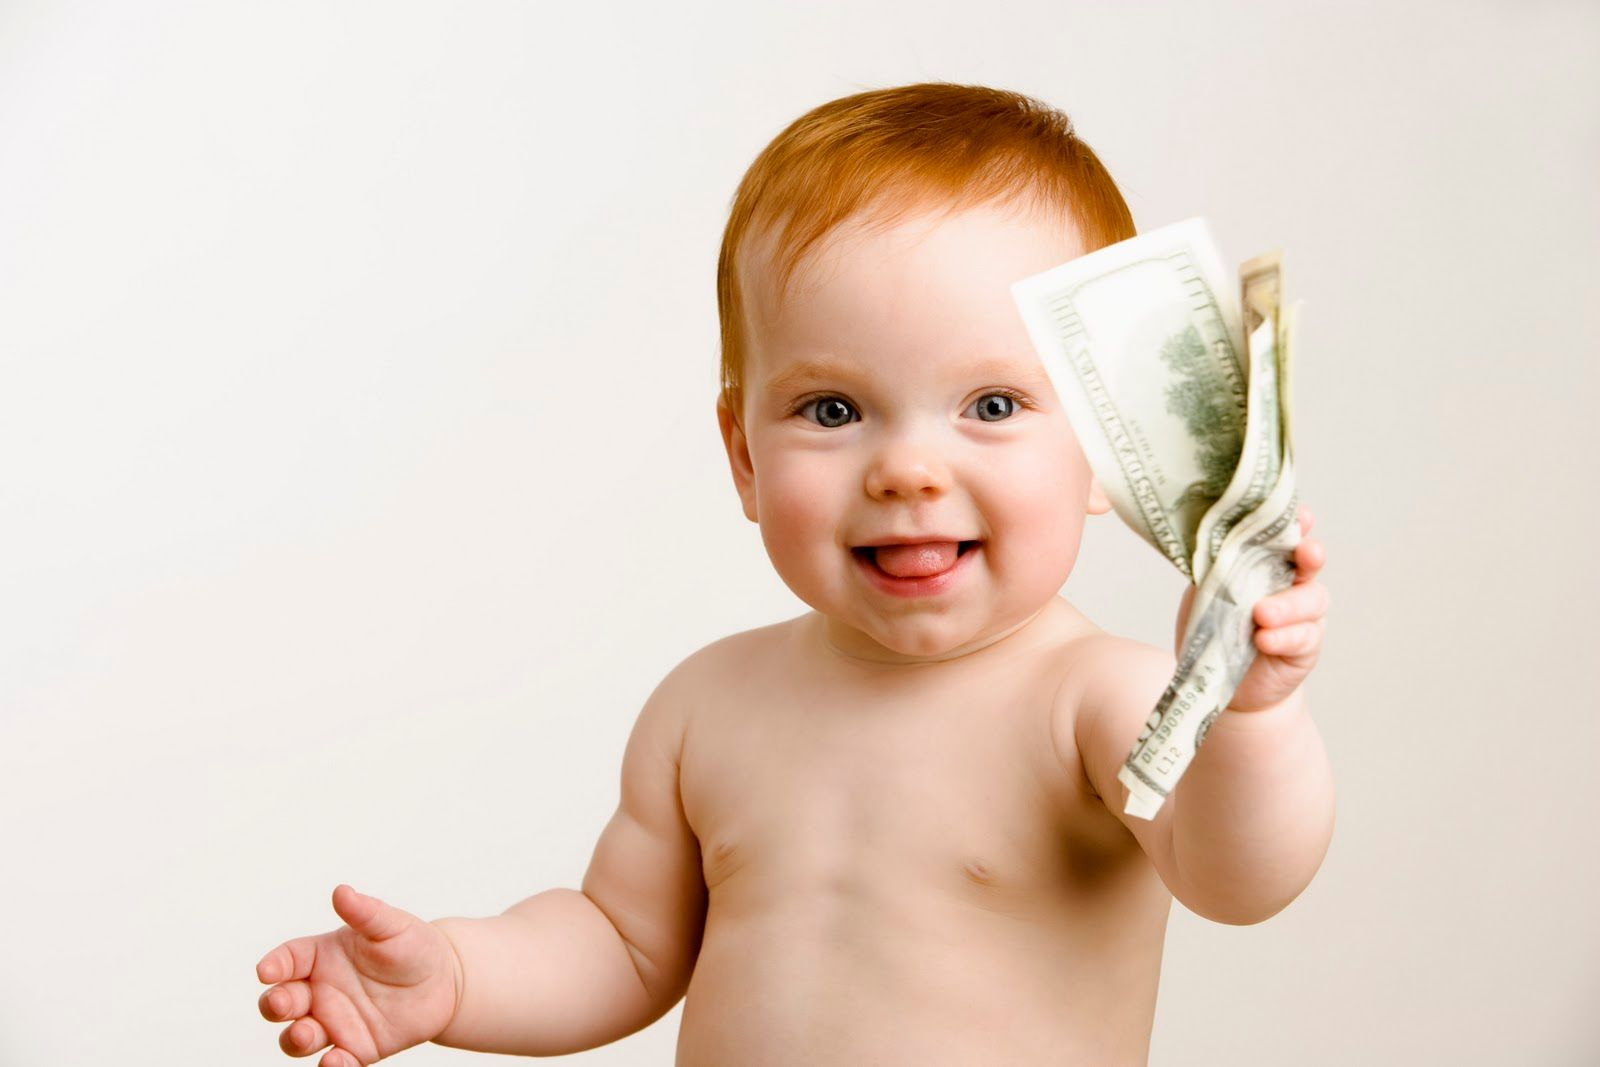 Baby-With-Money-Wallpapers-HD.jpg